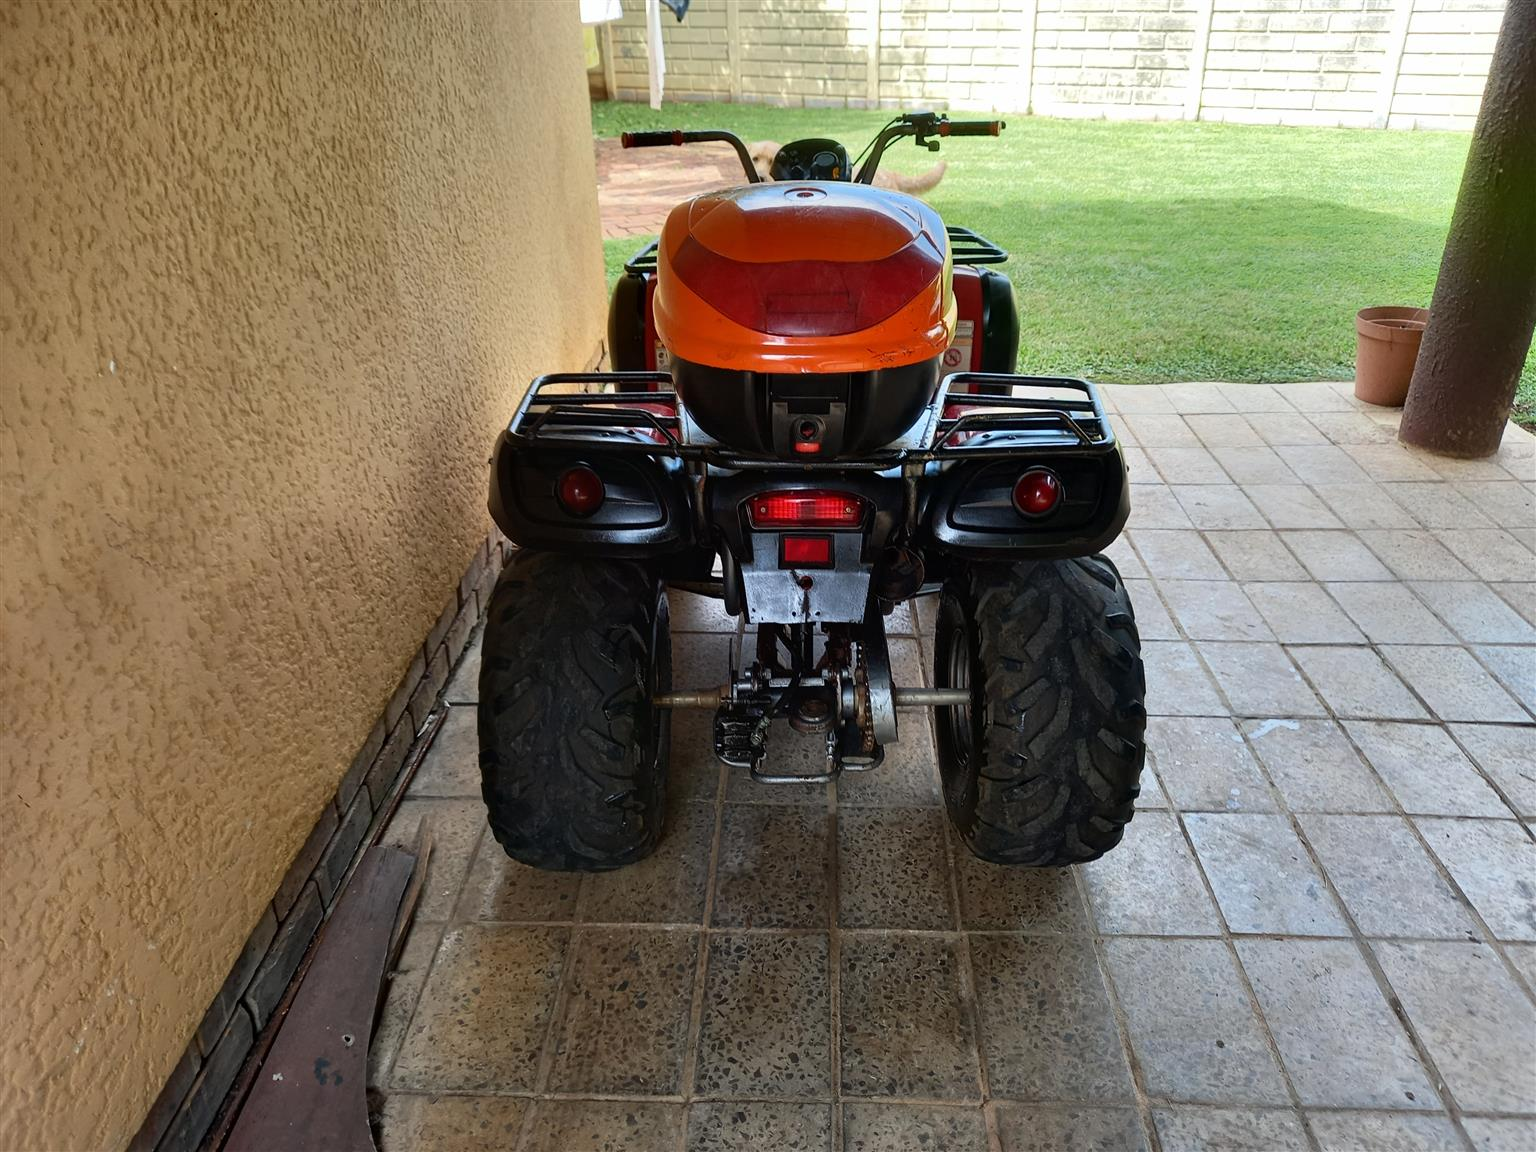 Aeon 180 Overlander,Automatic with reverse